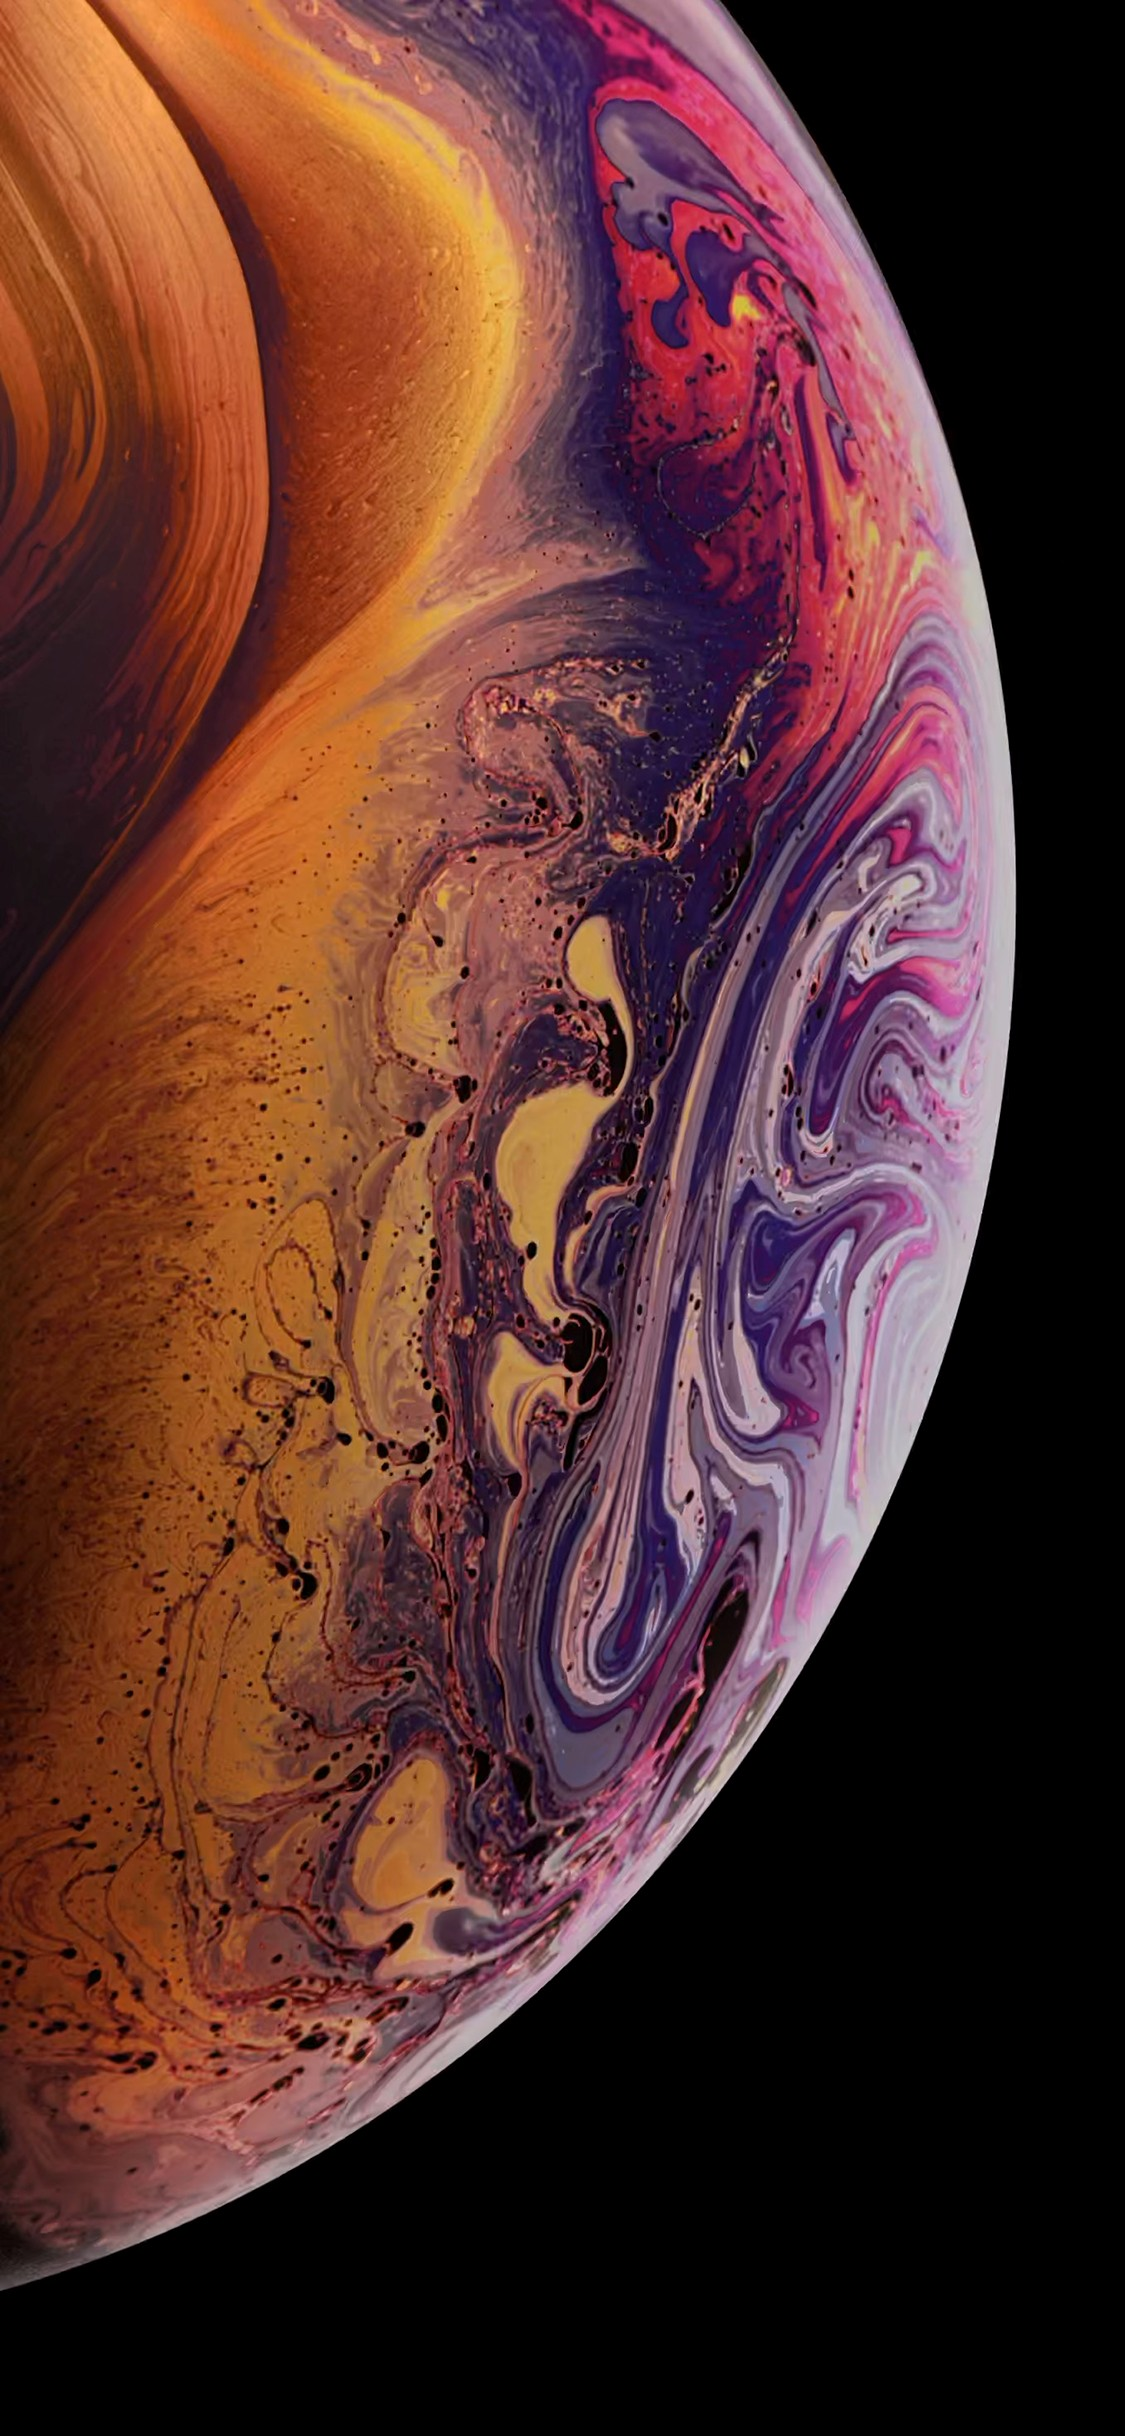 Iphone Xs Wallpaper Tumblr With High-resolution Pixel - Download Wallpaper Iphone Xs - HD Wallpaper